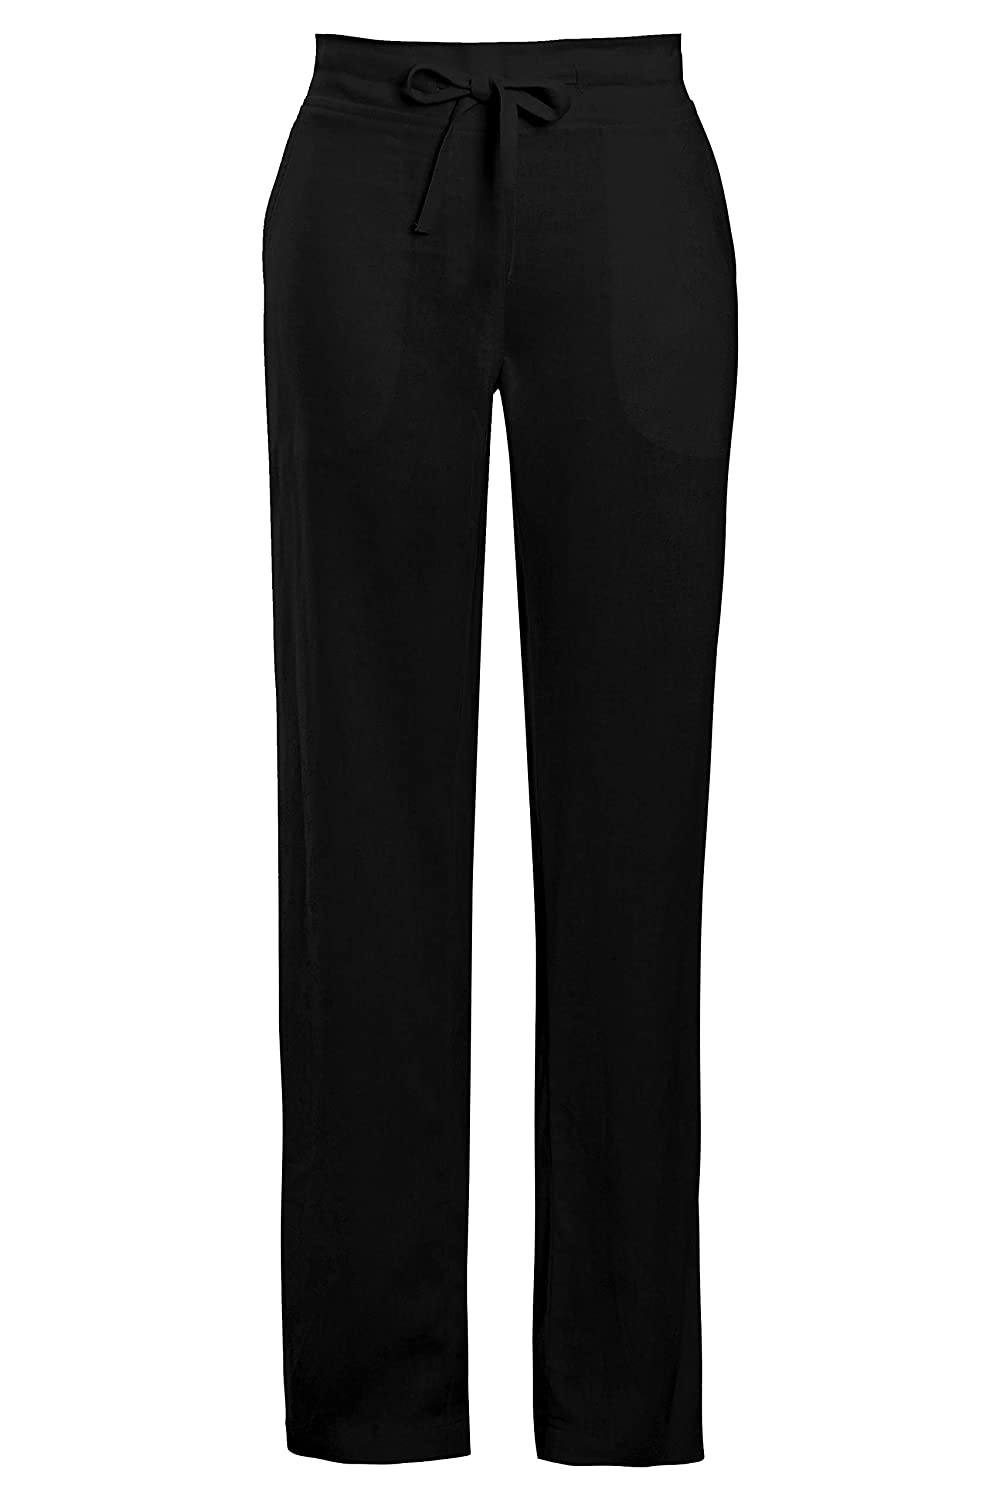 Habigail Ladies Linen Trousers Elasticated Waist Casual Summer Pants Full Length